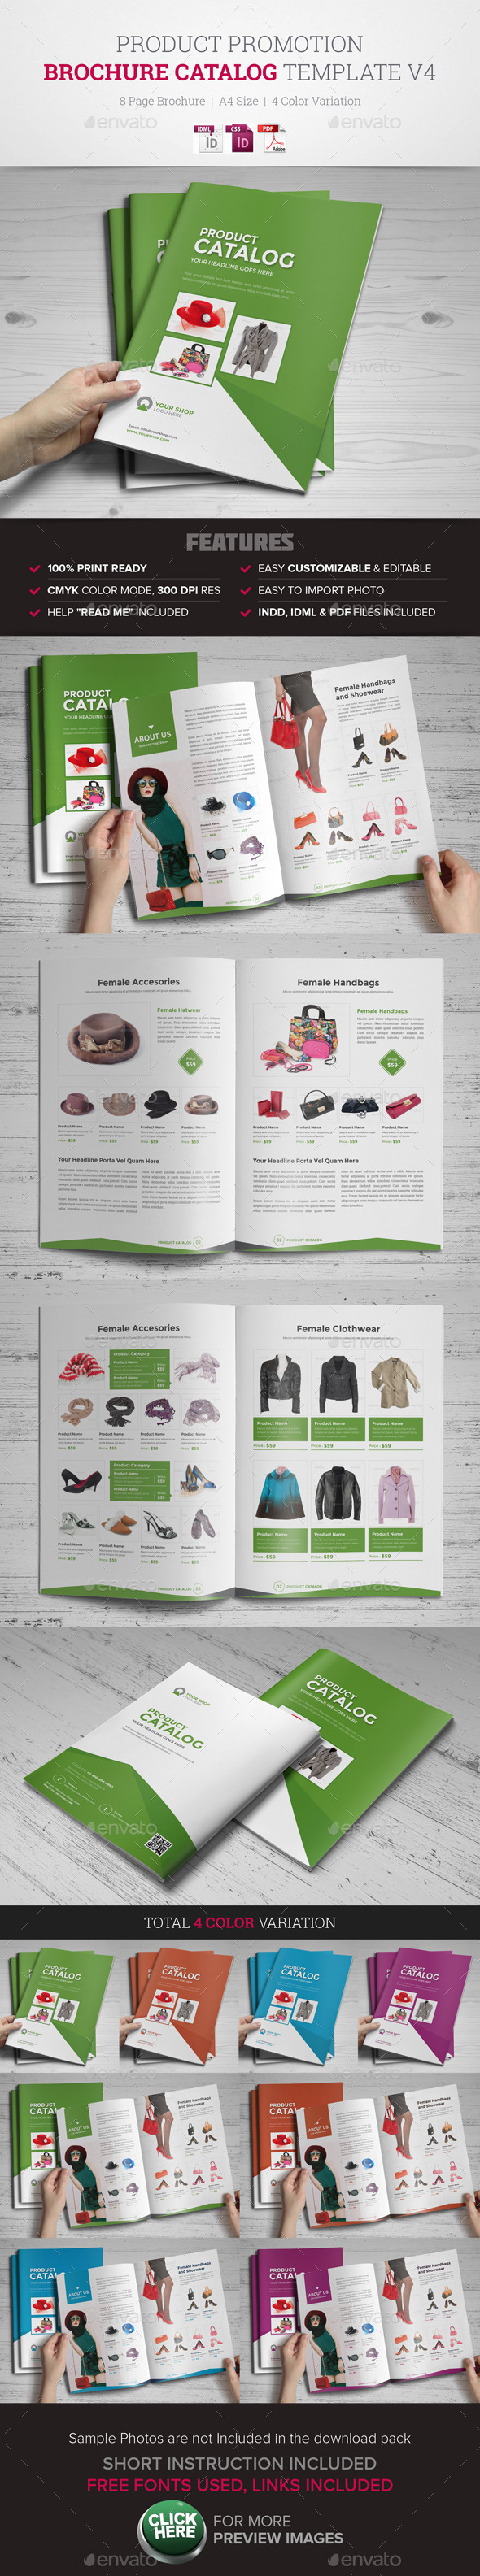 GraphicRiver Product Promotion Catalog InDesign Template v4 11473441